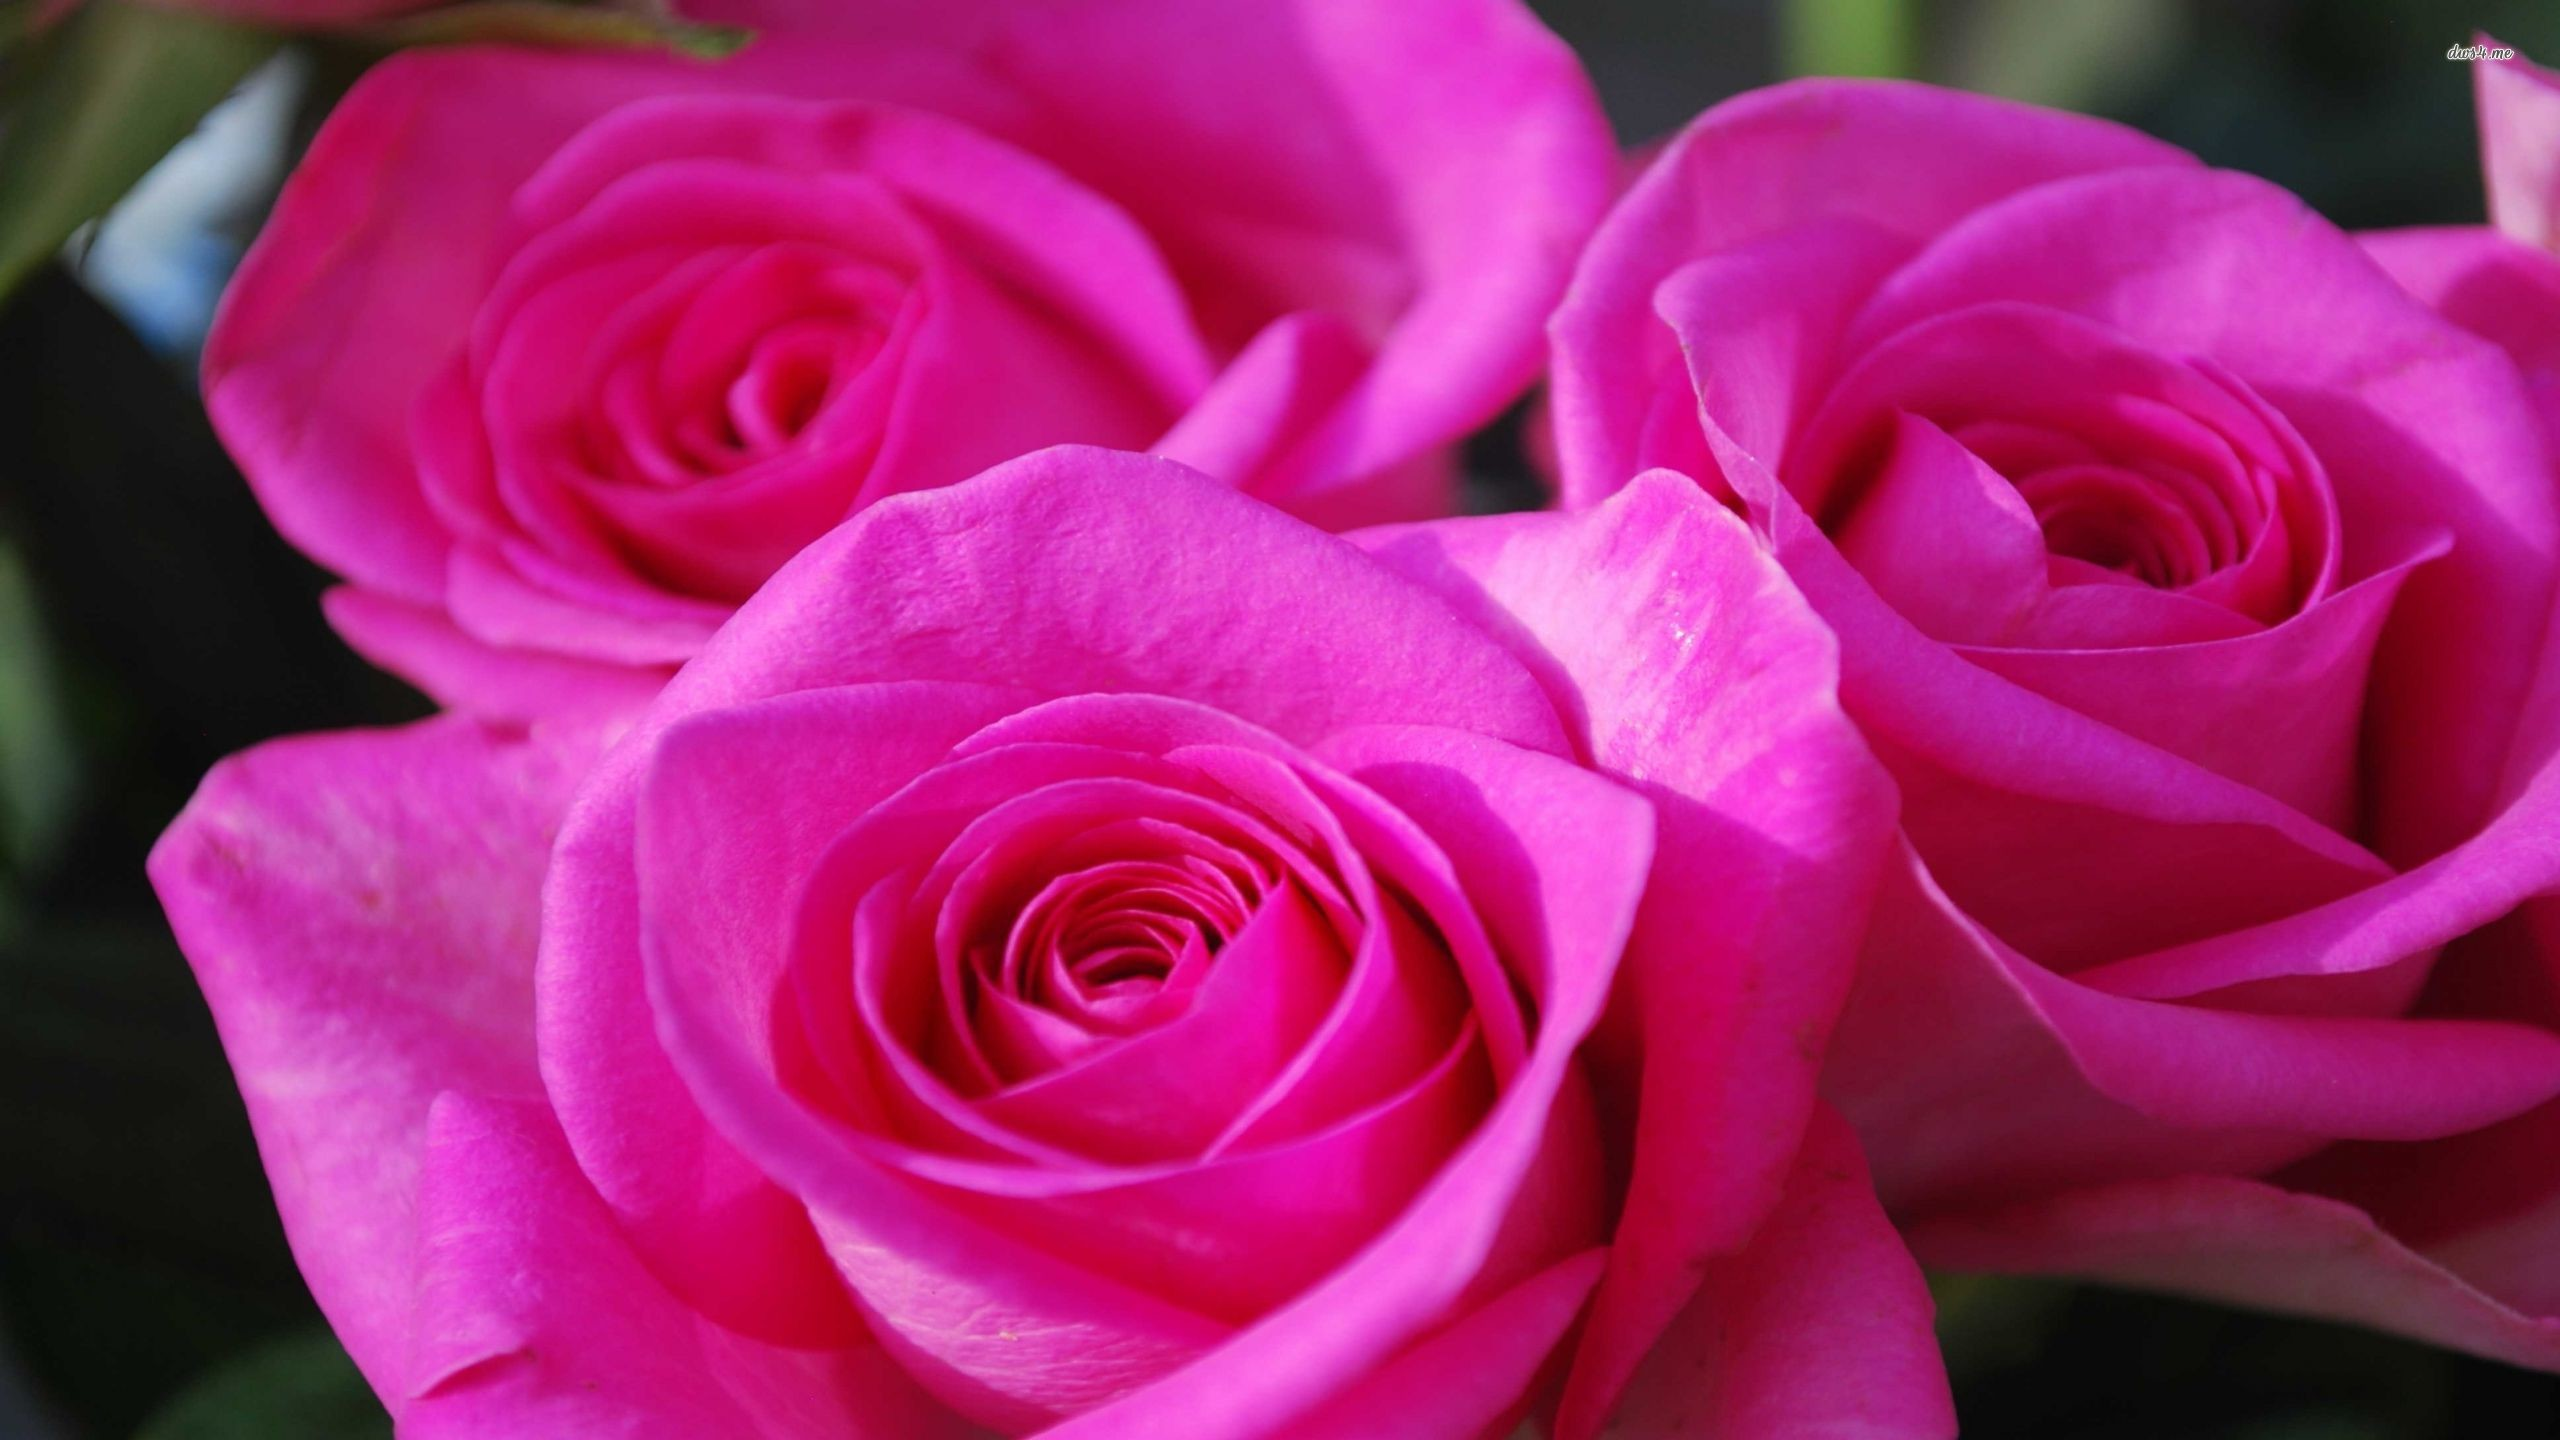 Res: 2560x1440, ... Beautiful pink roses wallpaper  ...